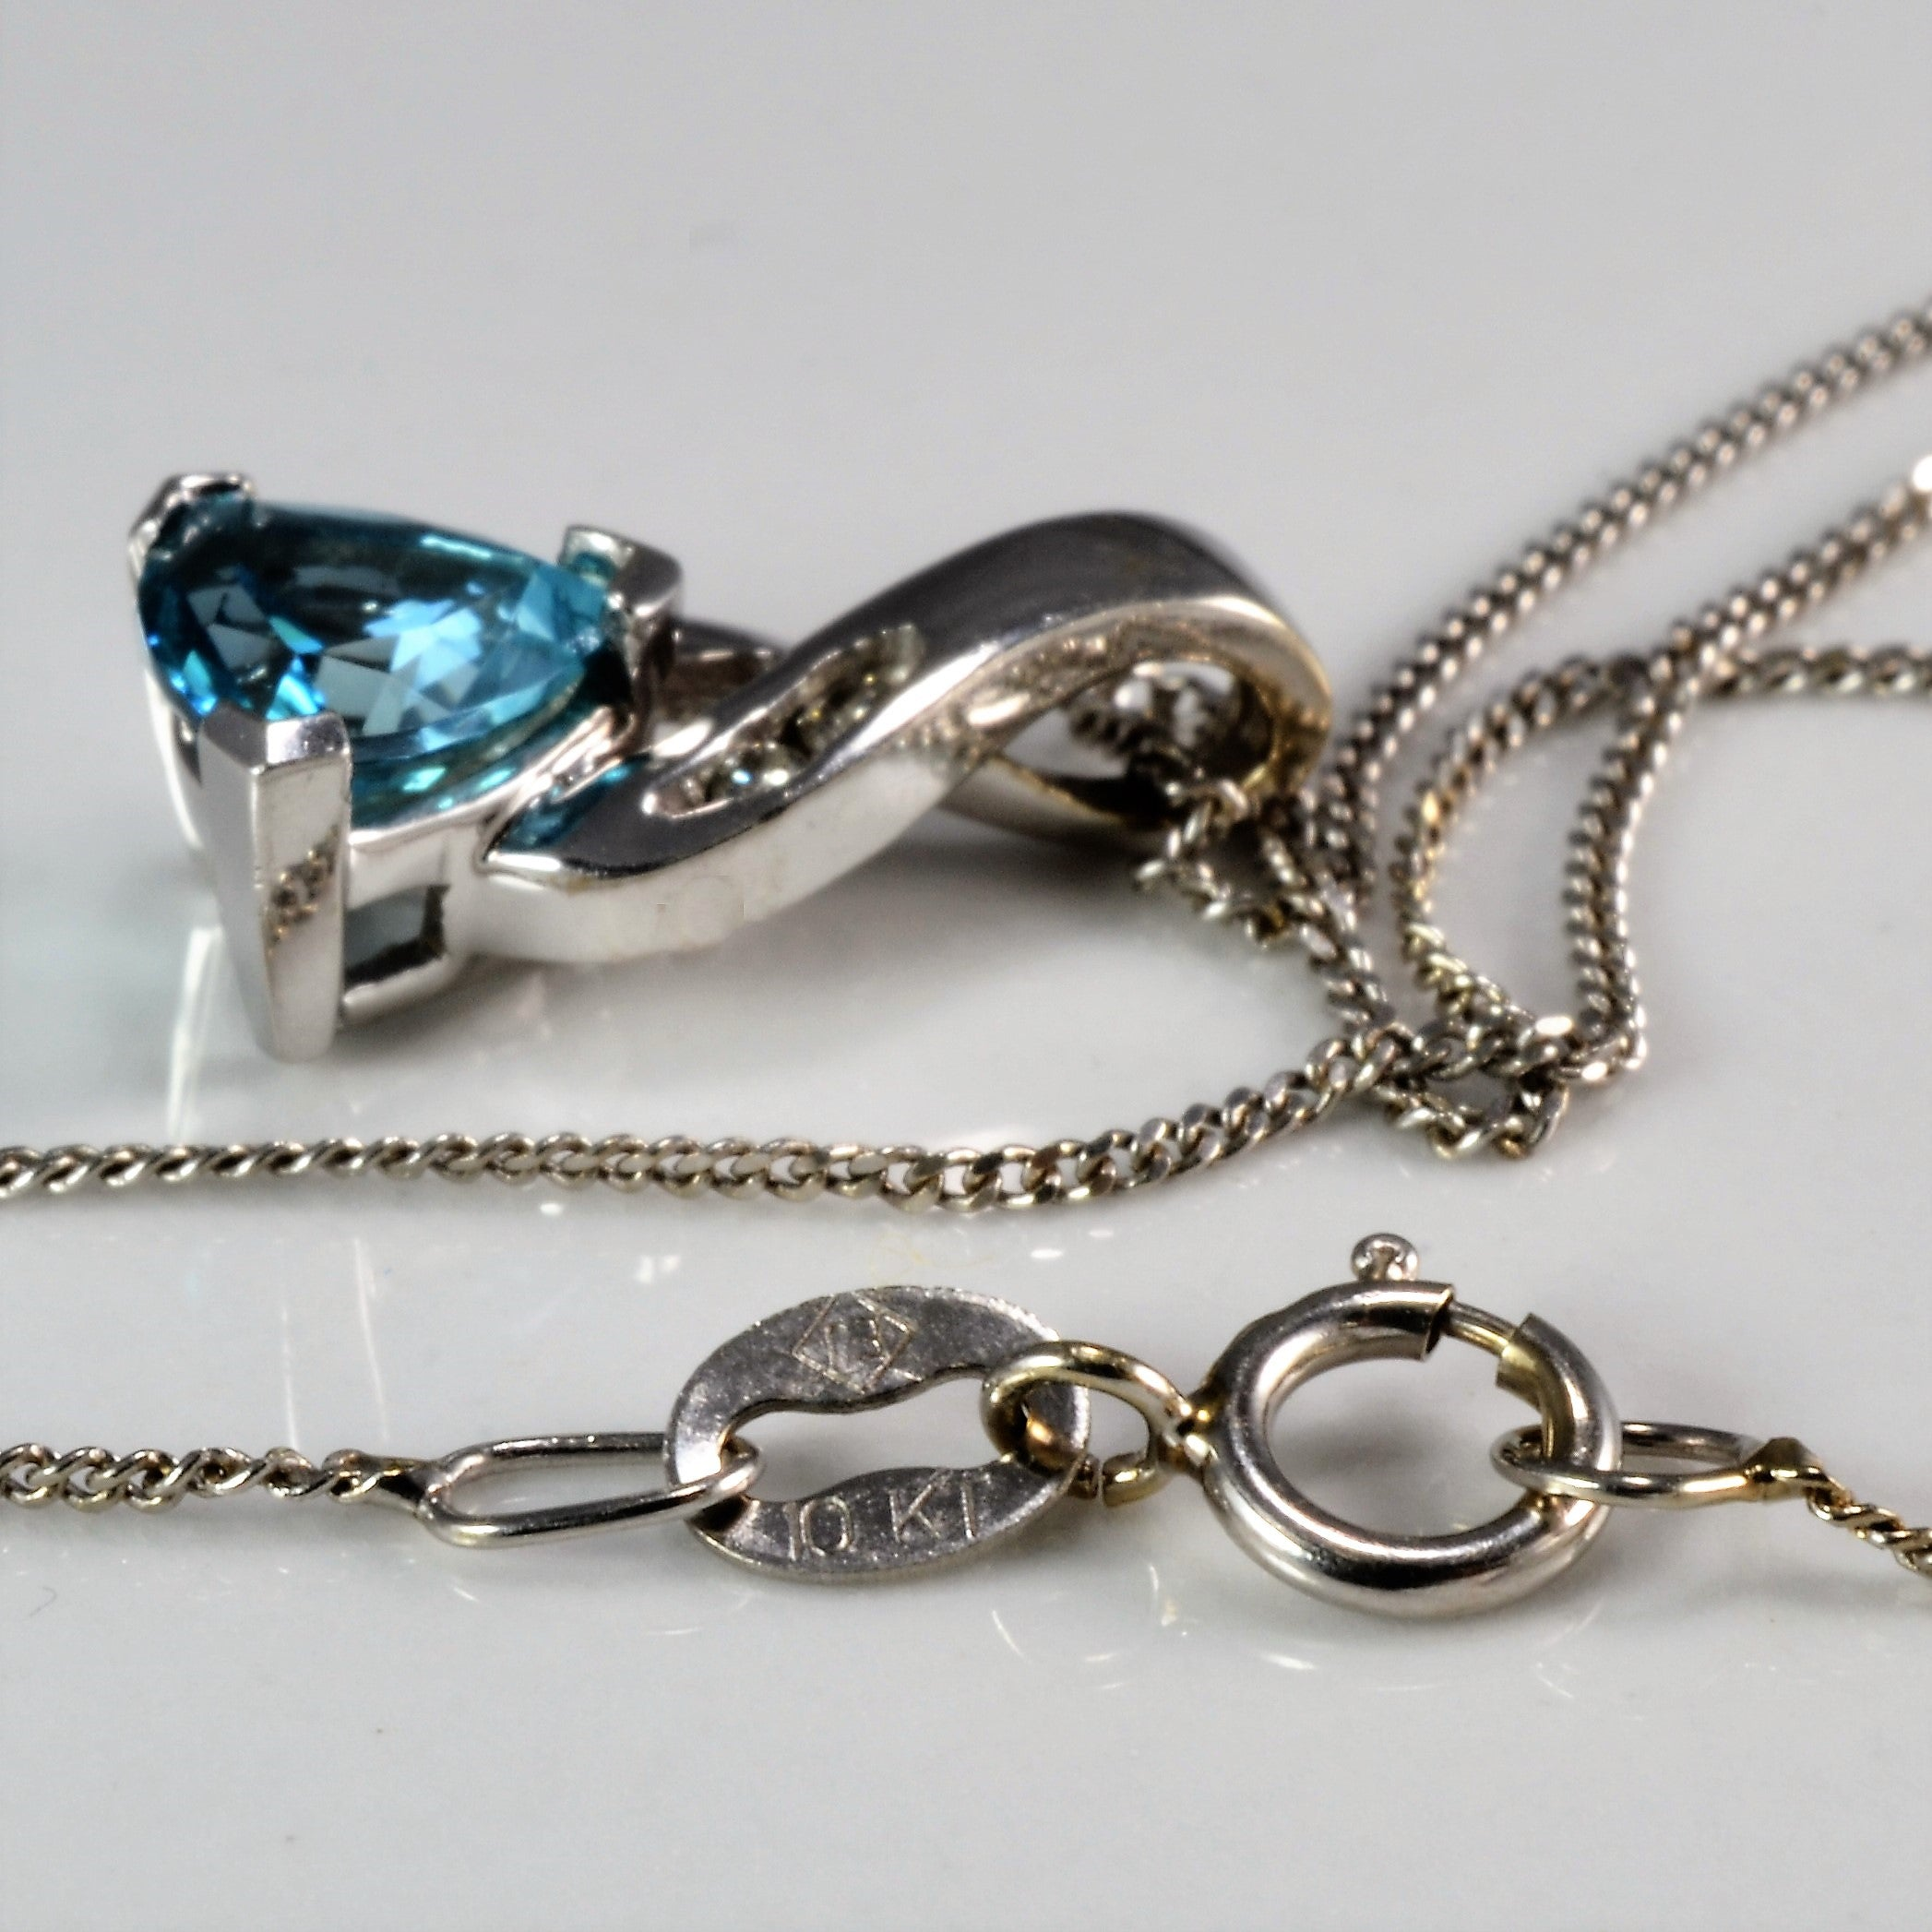 Trillion Cut Topaz Drop Pendant Necklace |16''|